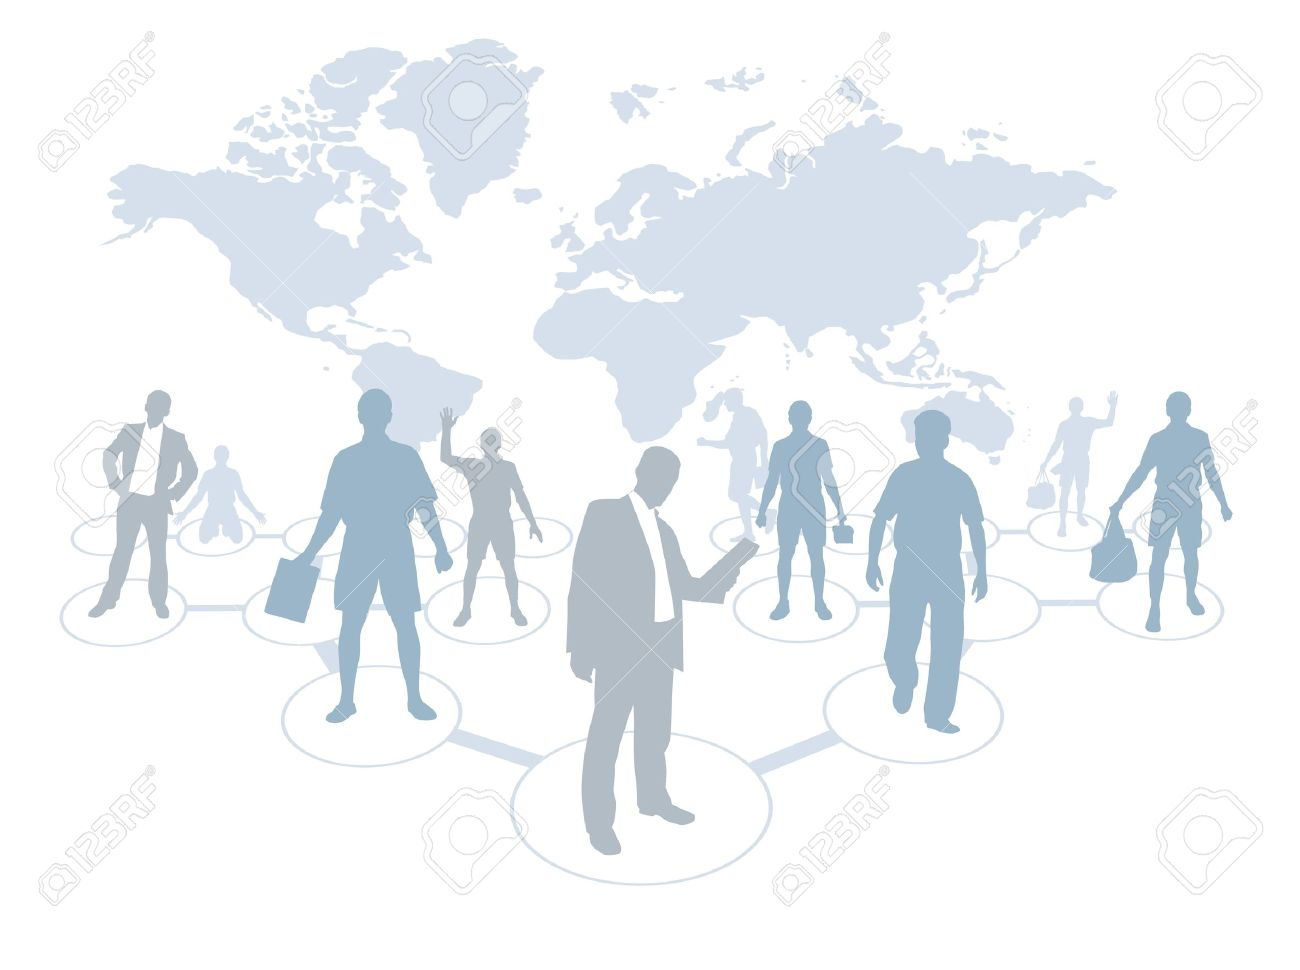 Business people with world map background royalty free cliparts business people with world map background stock vector 9744695 gumiabroncs Choice Image